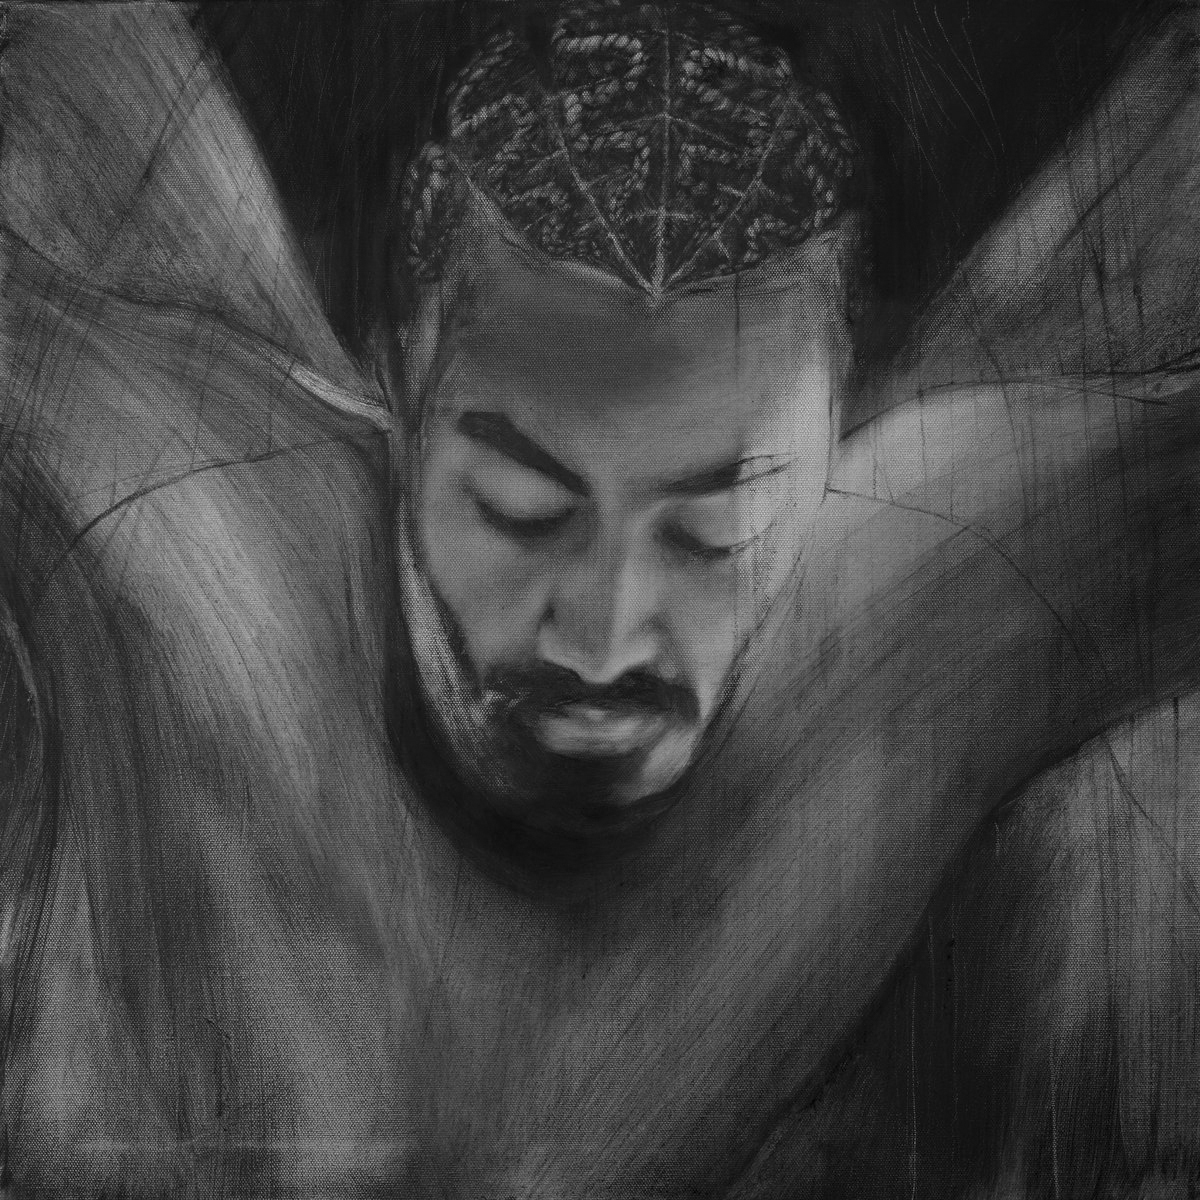 Album cover for Song of Sage: Post Panic! by Navy Blue. It's a grayscale illustration of a dark-skinned person looking down. We can only see their head and upper torso, but their arms appear to be outstretched. Their hair is worn in braids that curve, and they have a goatee. The illustration looks like it's done in charcoal, so their features on their torso and behind them are smeared. Artwork by John Singletary.